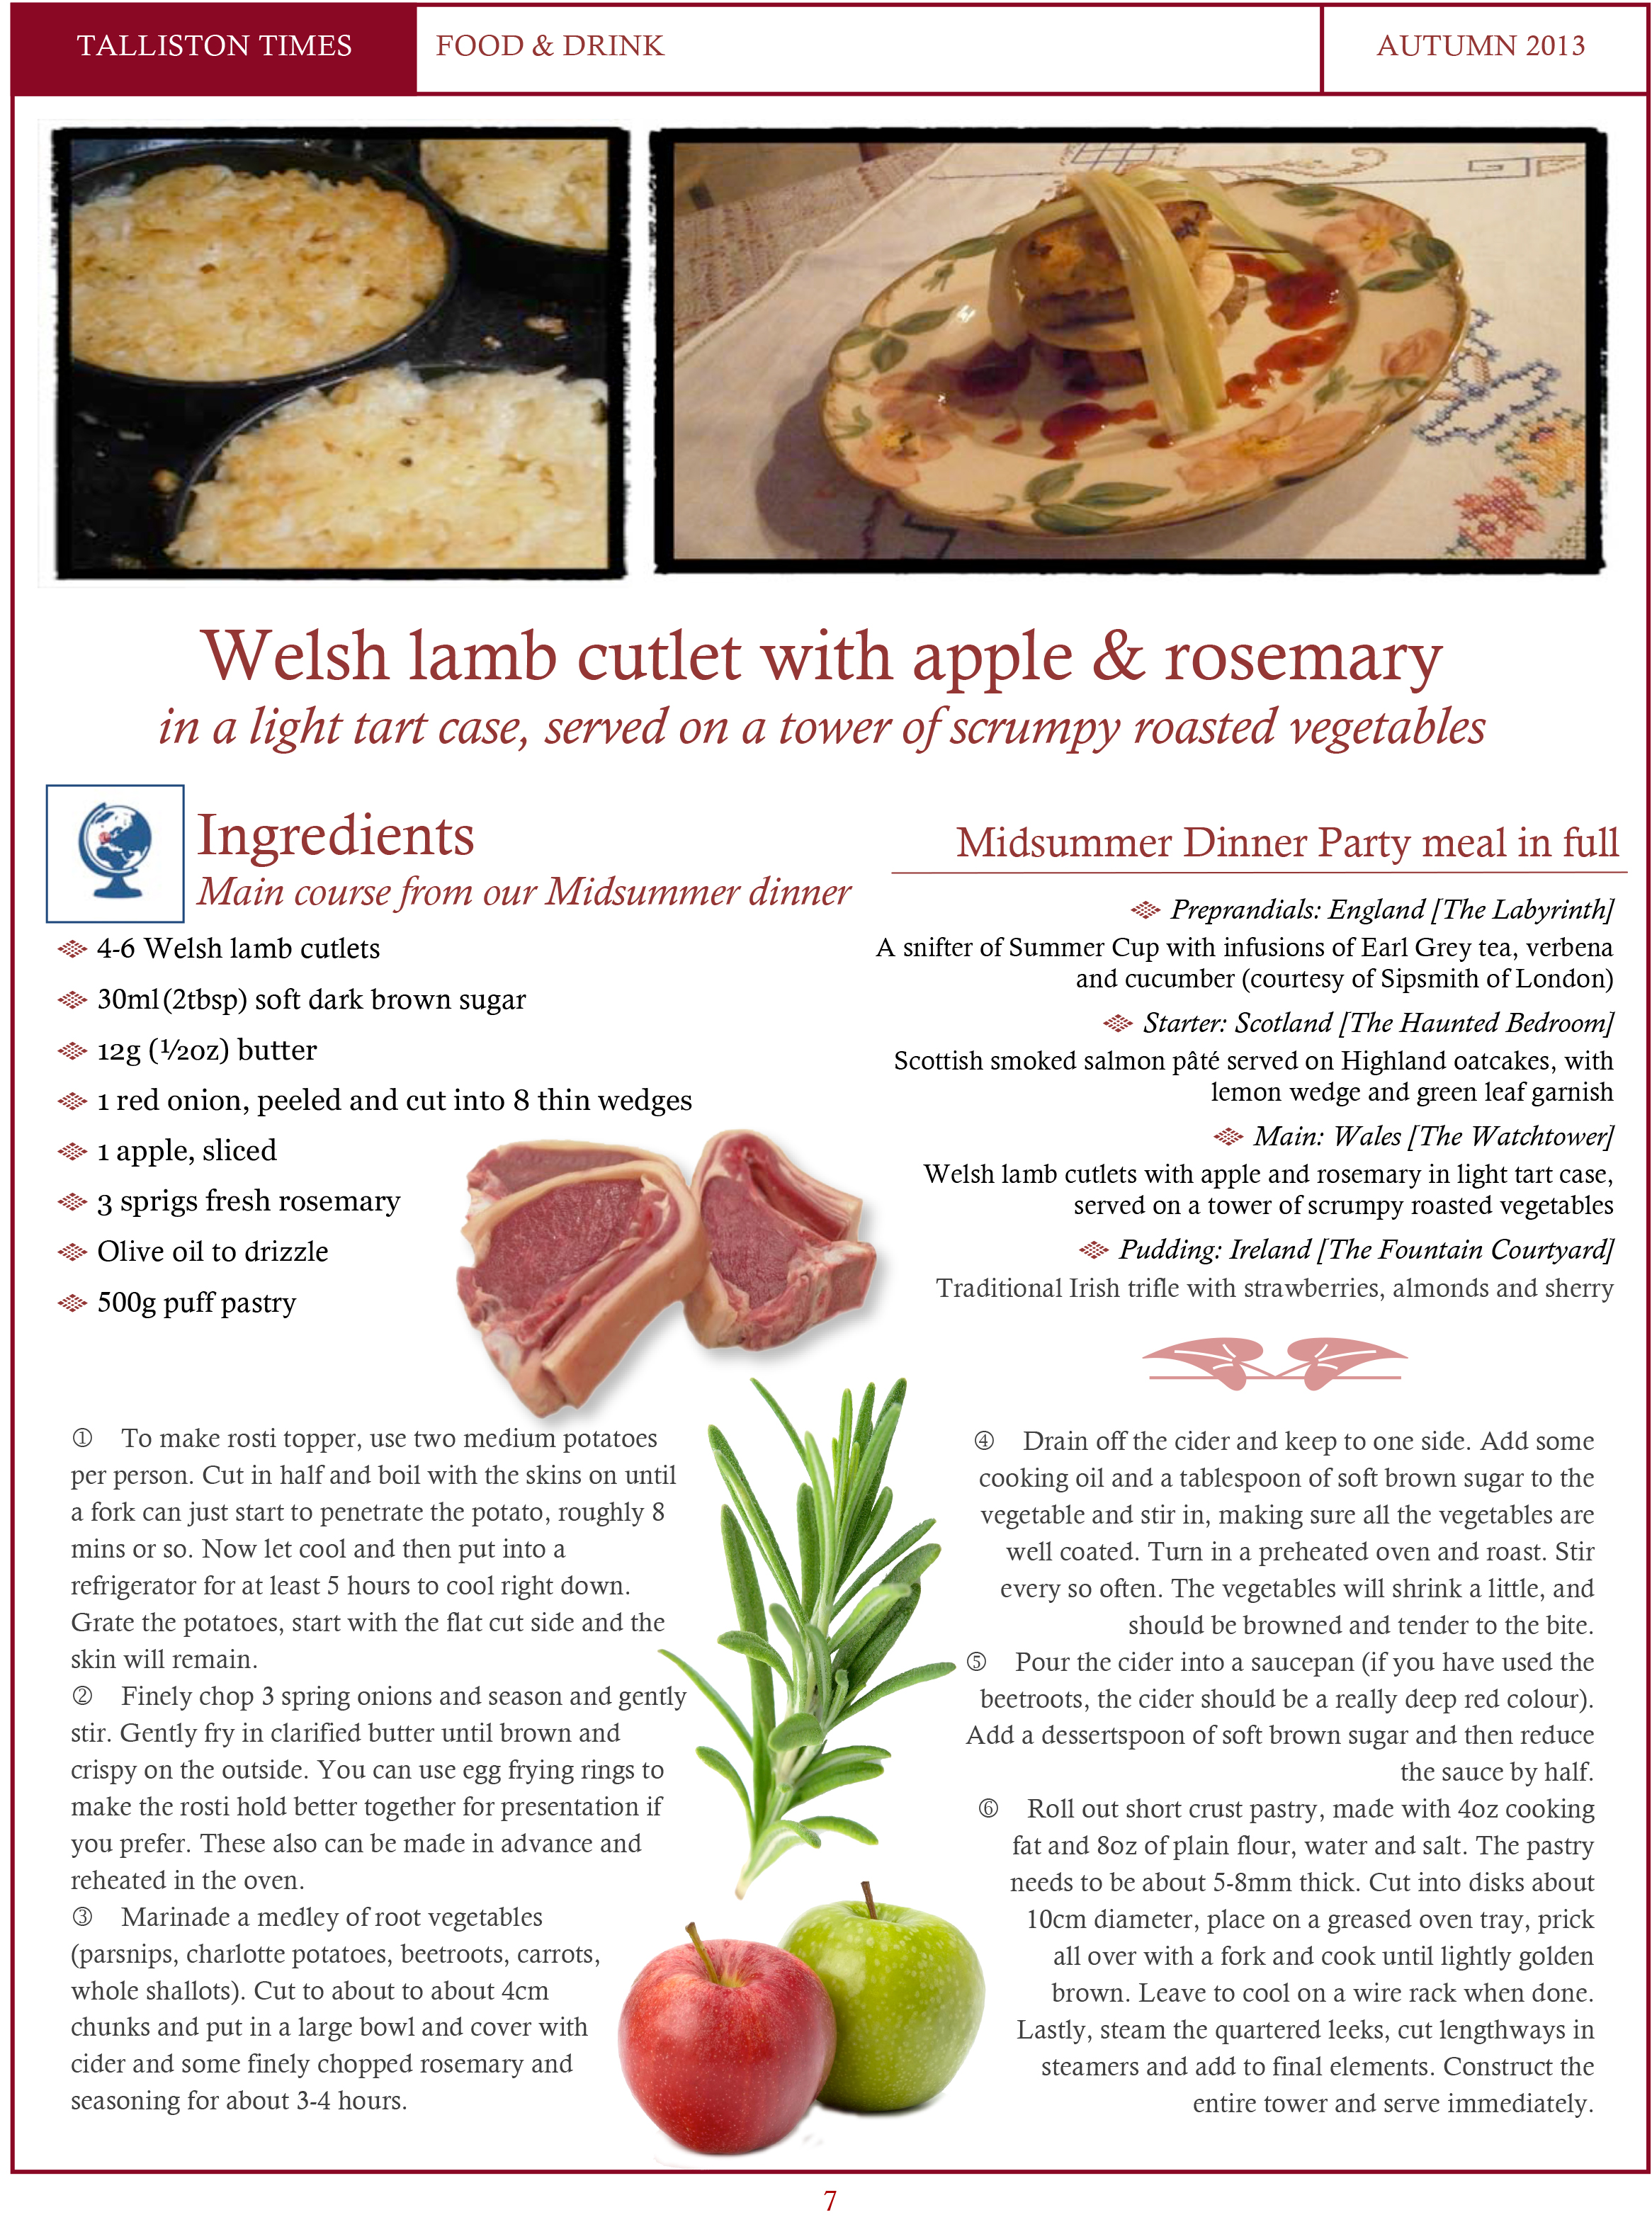 Recipe #2 Welsh Lamb Cutlet